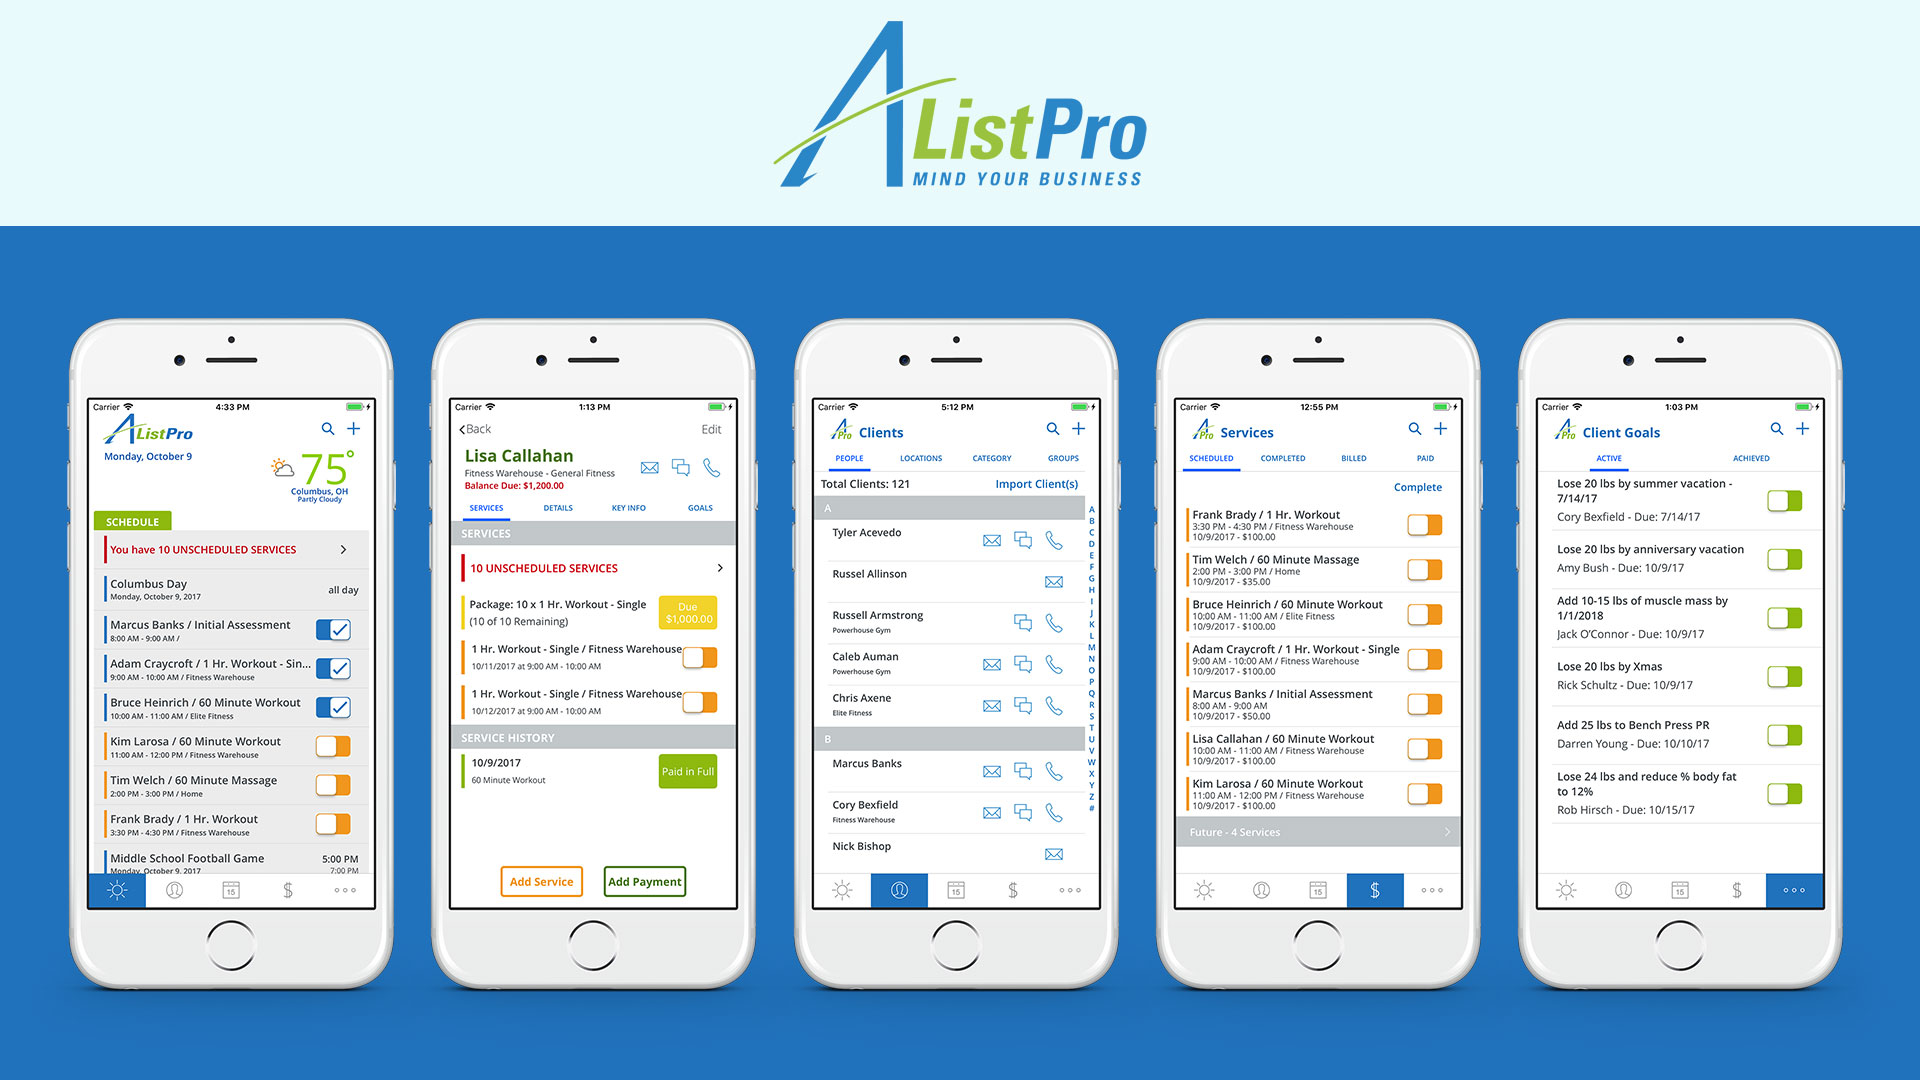 A-ListPro is a New iOS App designed exclusively for Appointment-based Service Businesses